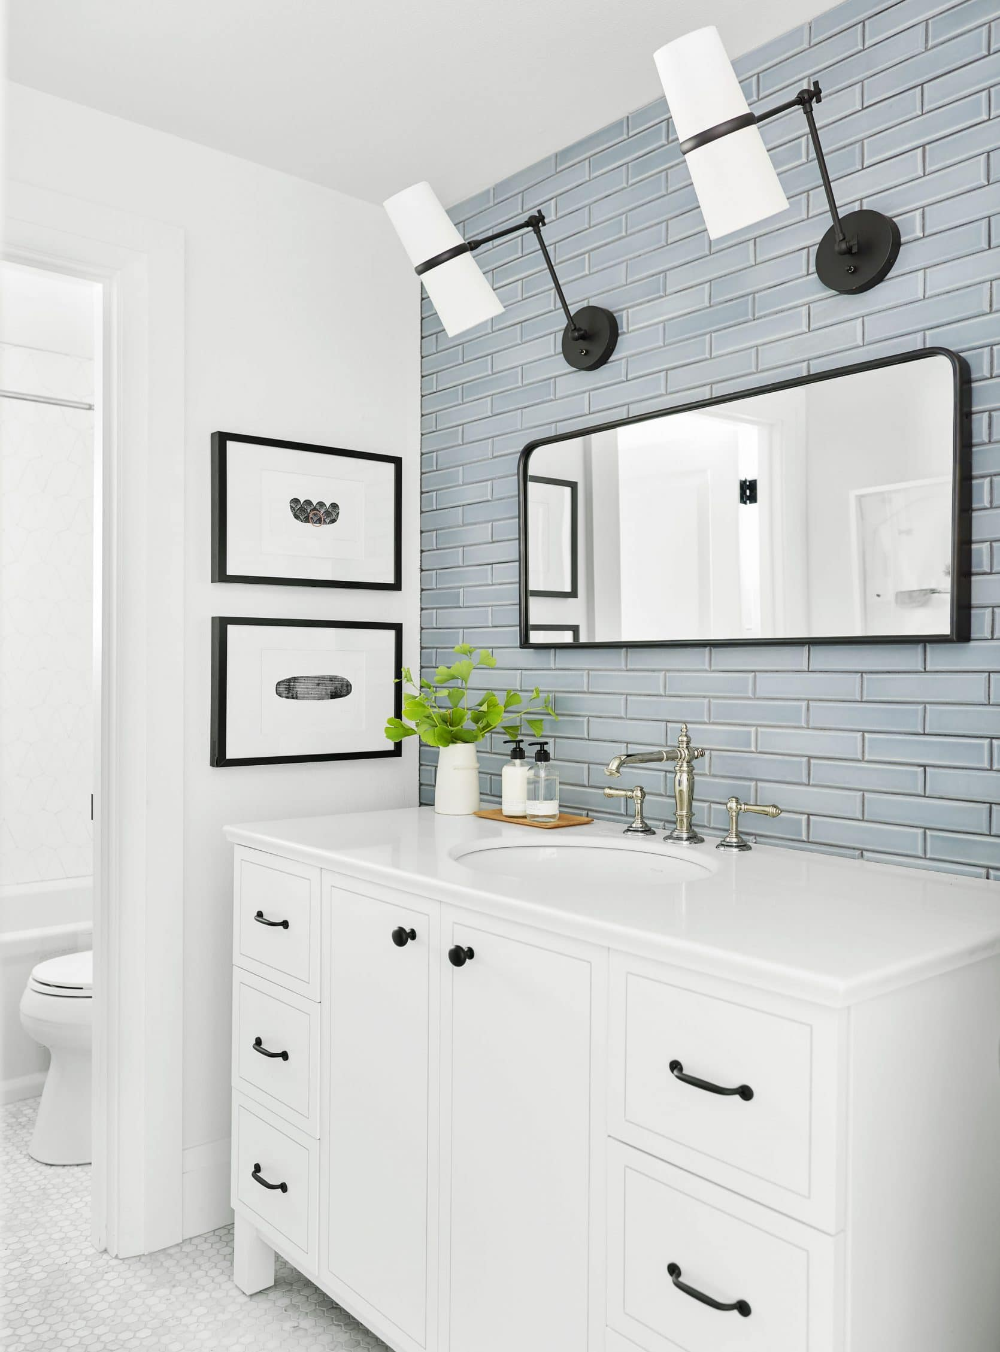 10 Of The Most Exciting Bathroom Design Trends For 2019 In 2020 Bathroom Trends Bathroom Design Trends Small Bathroom Trends